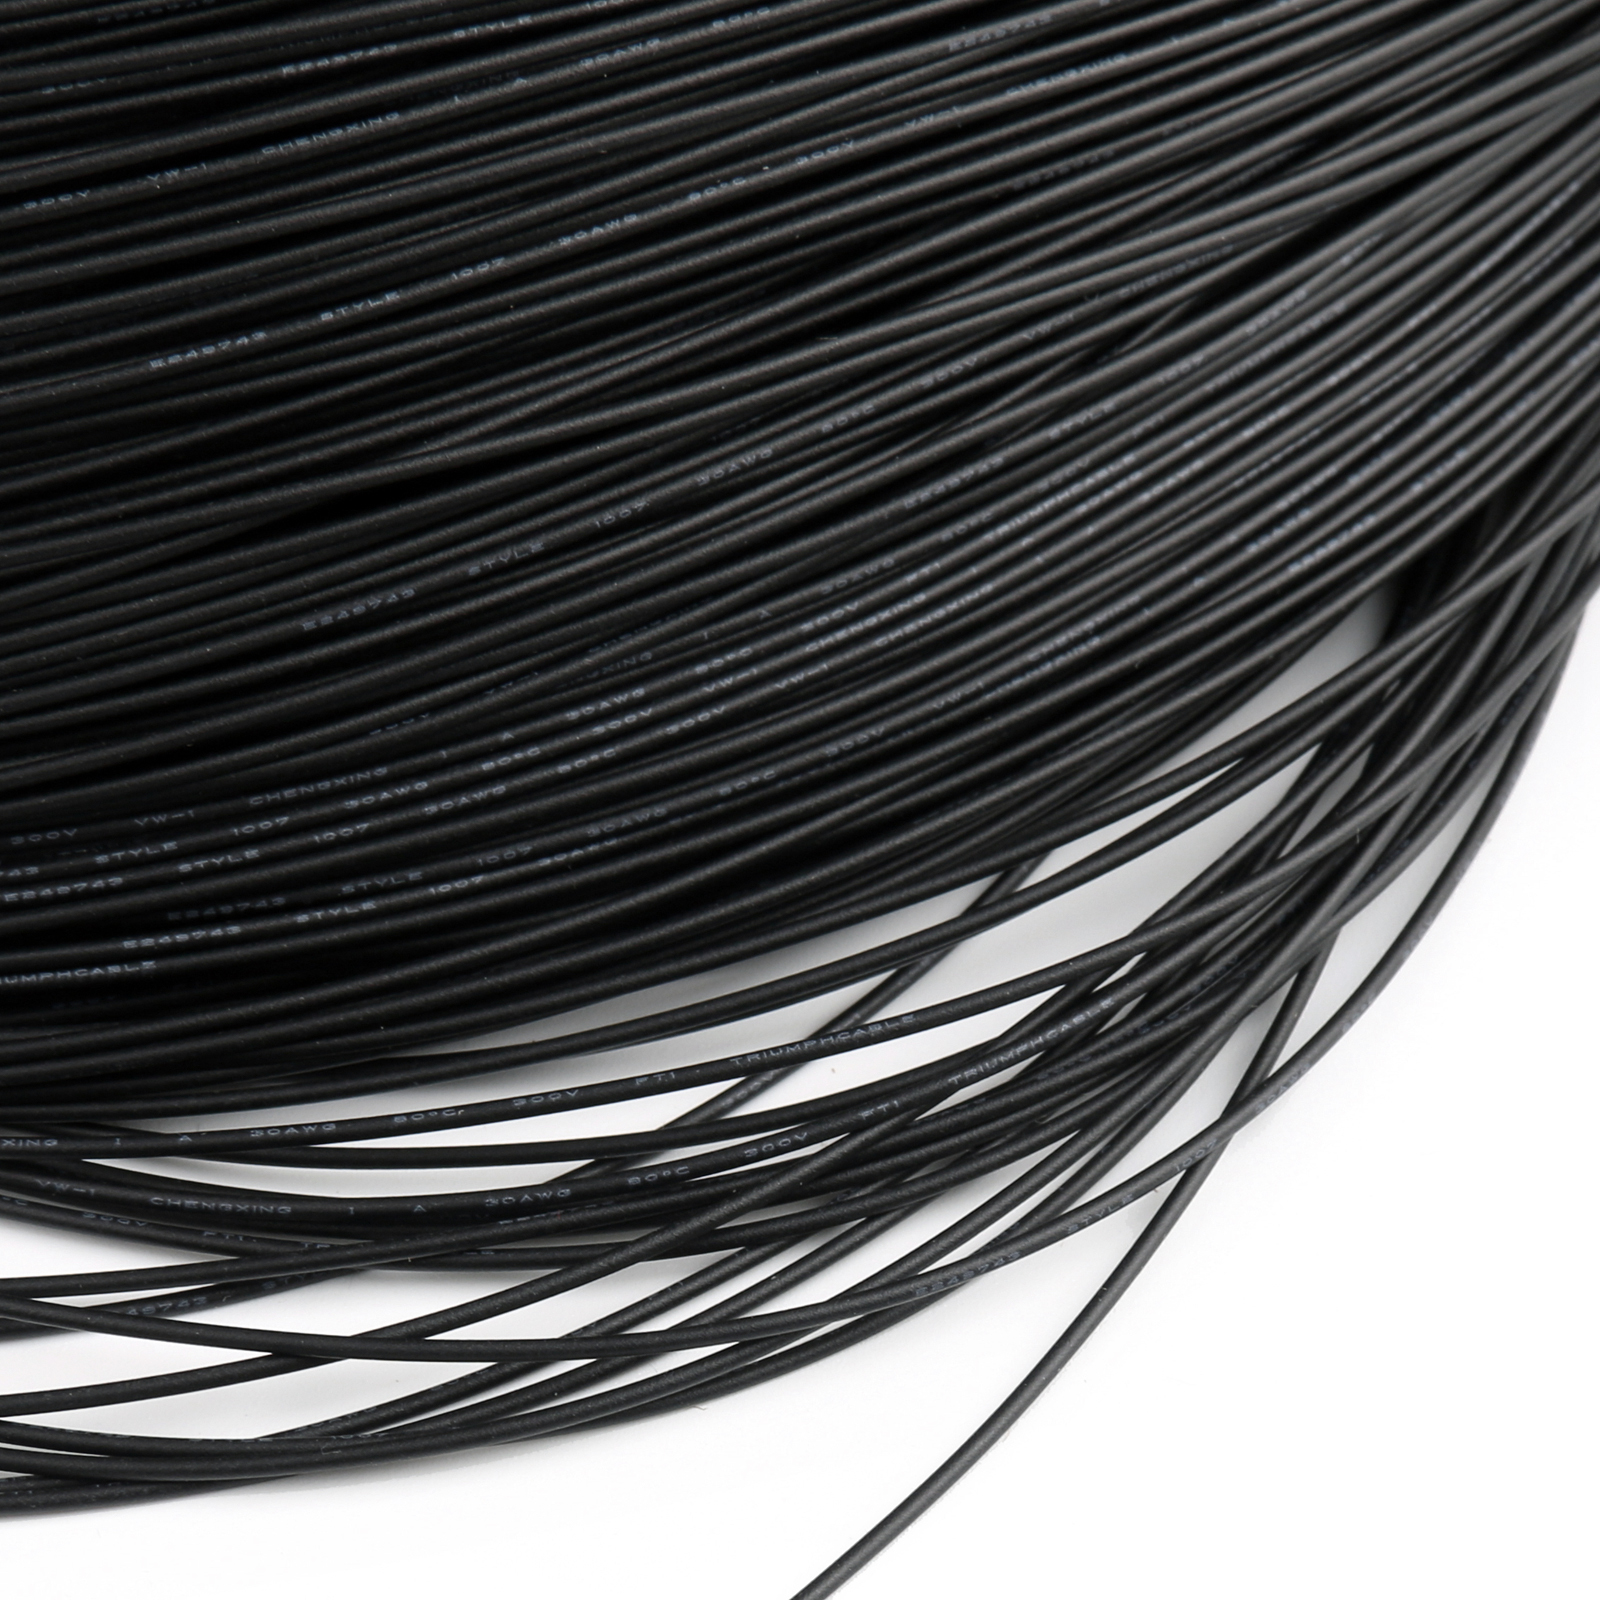 10M Black Flexible Stranded UL1007 30AWG Electronic Wire PVC Cable ...